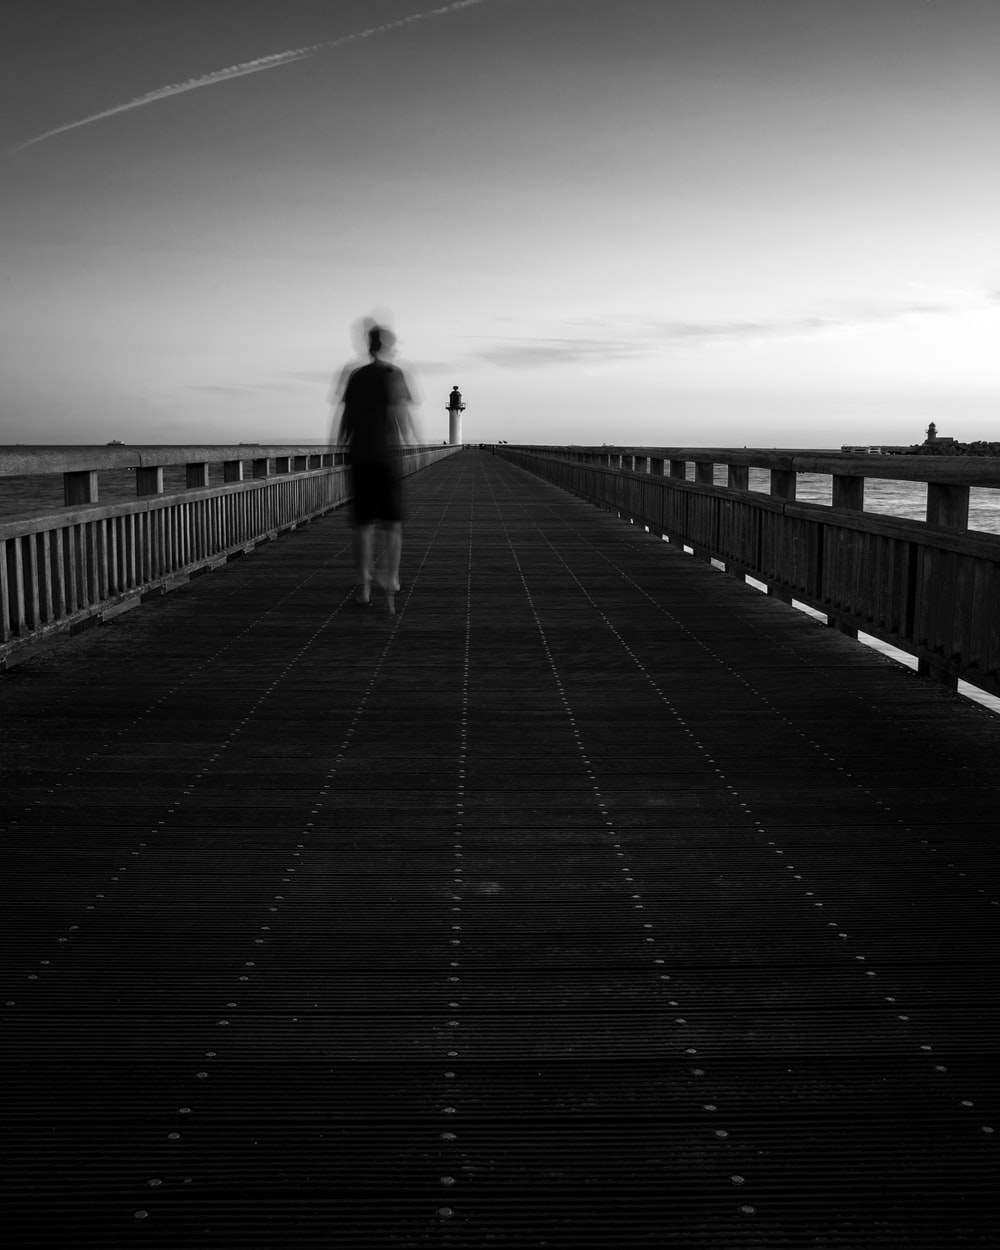 grayscale photo of person walking on wooden bridge